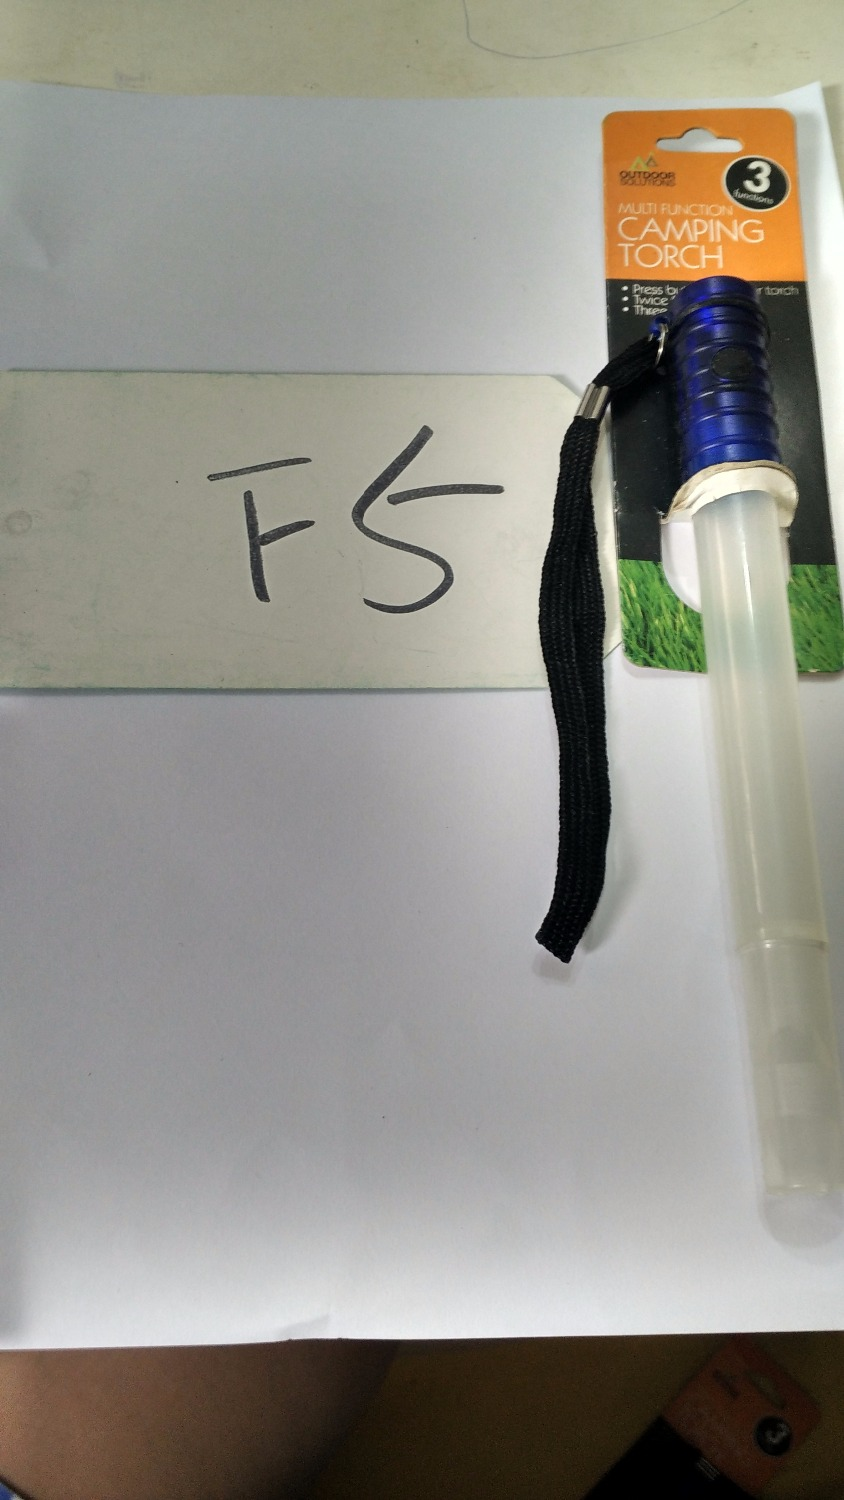 F5 CAMPING TORCH Airsoft Softair one bid(China (Mainland))